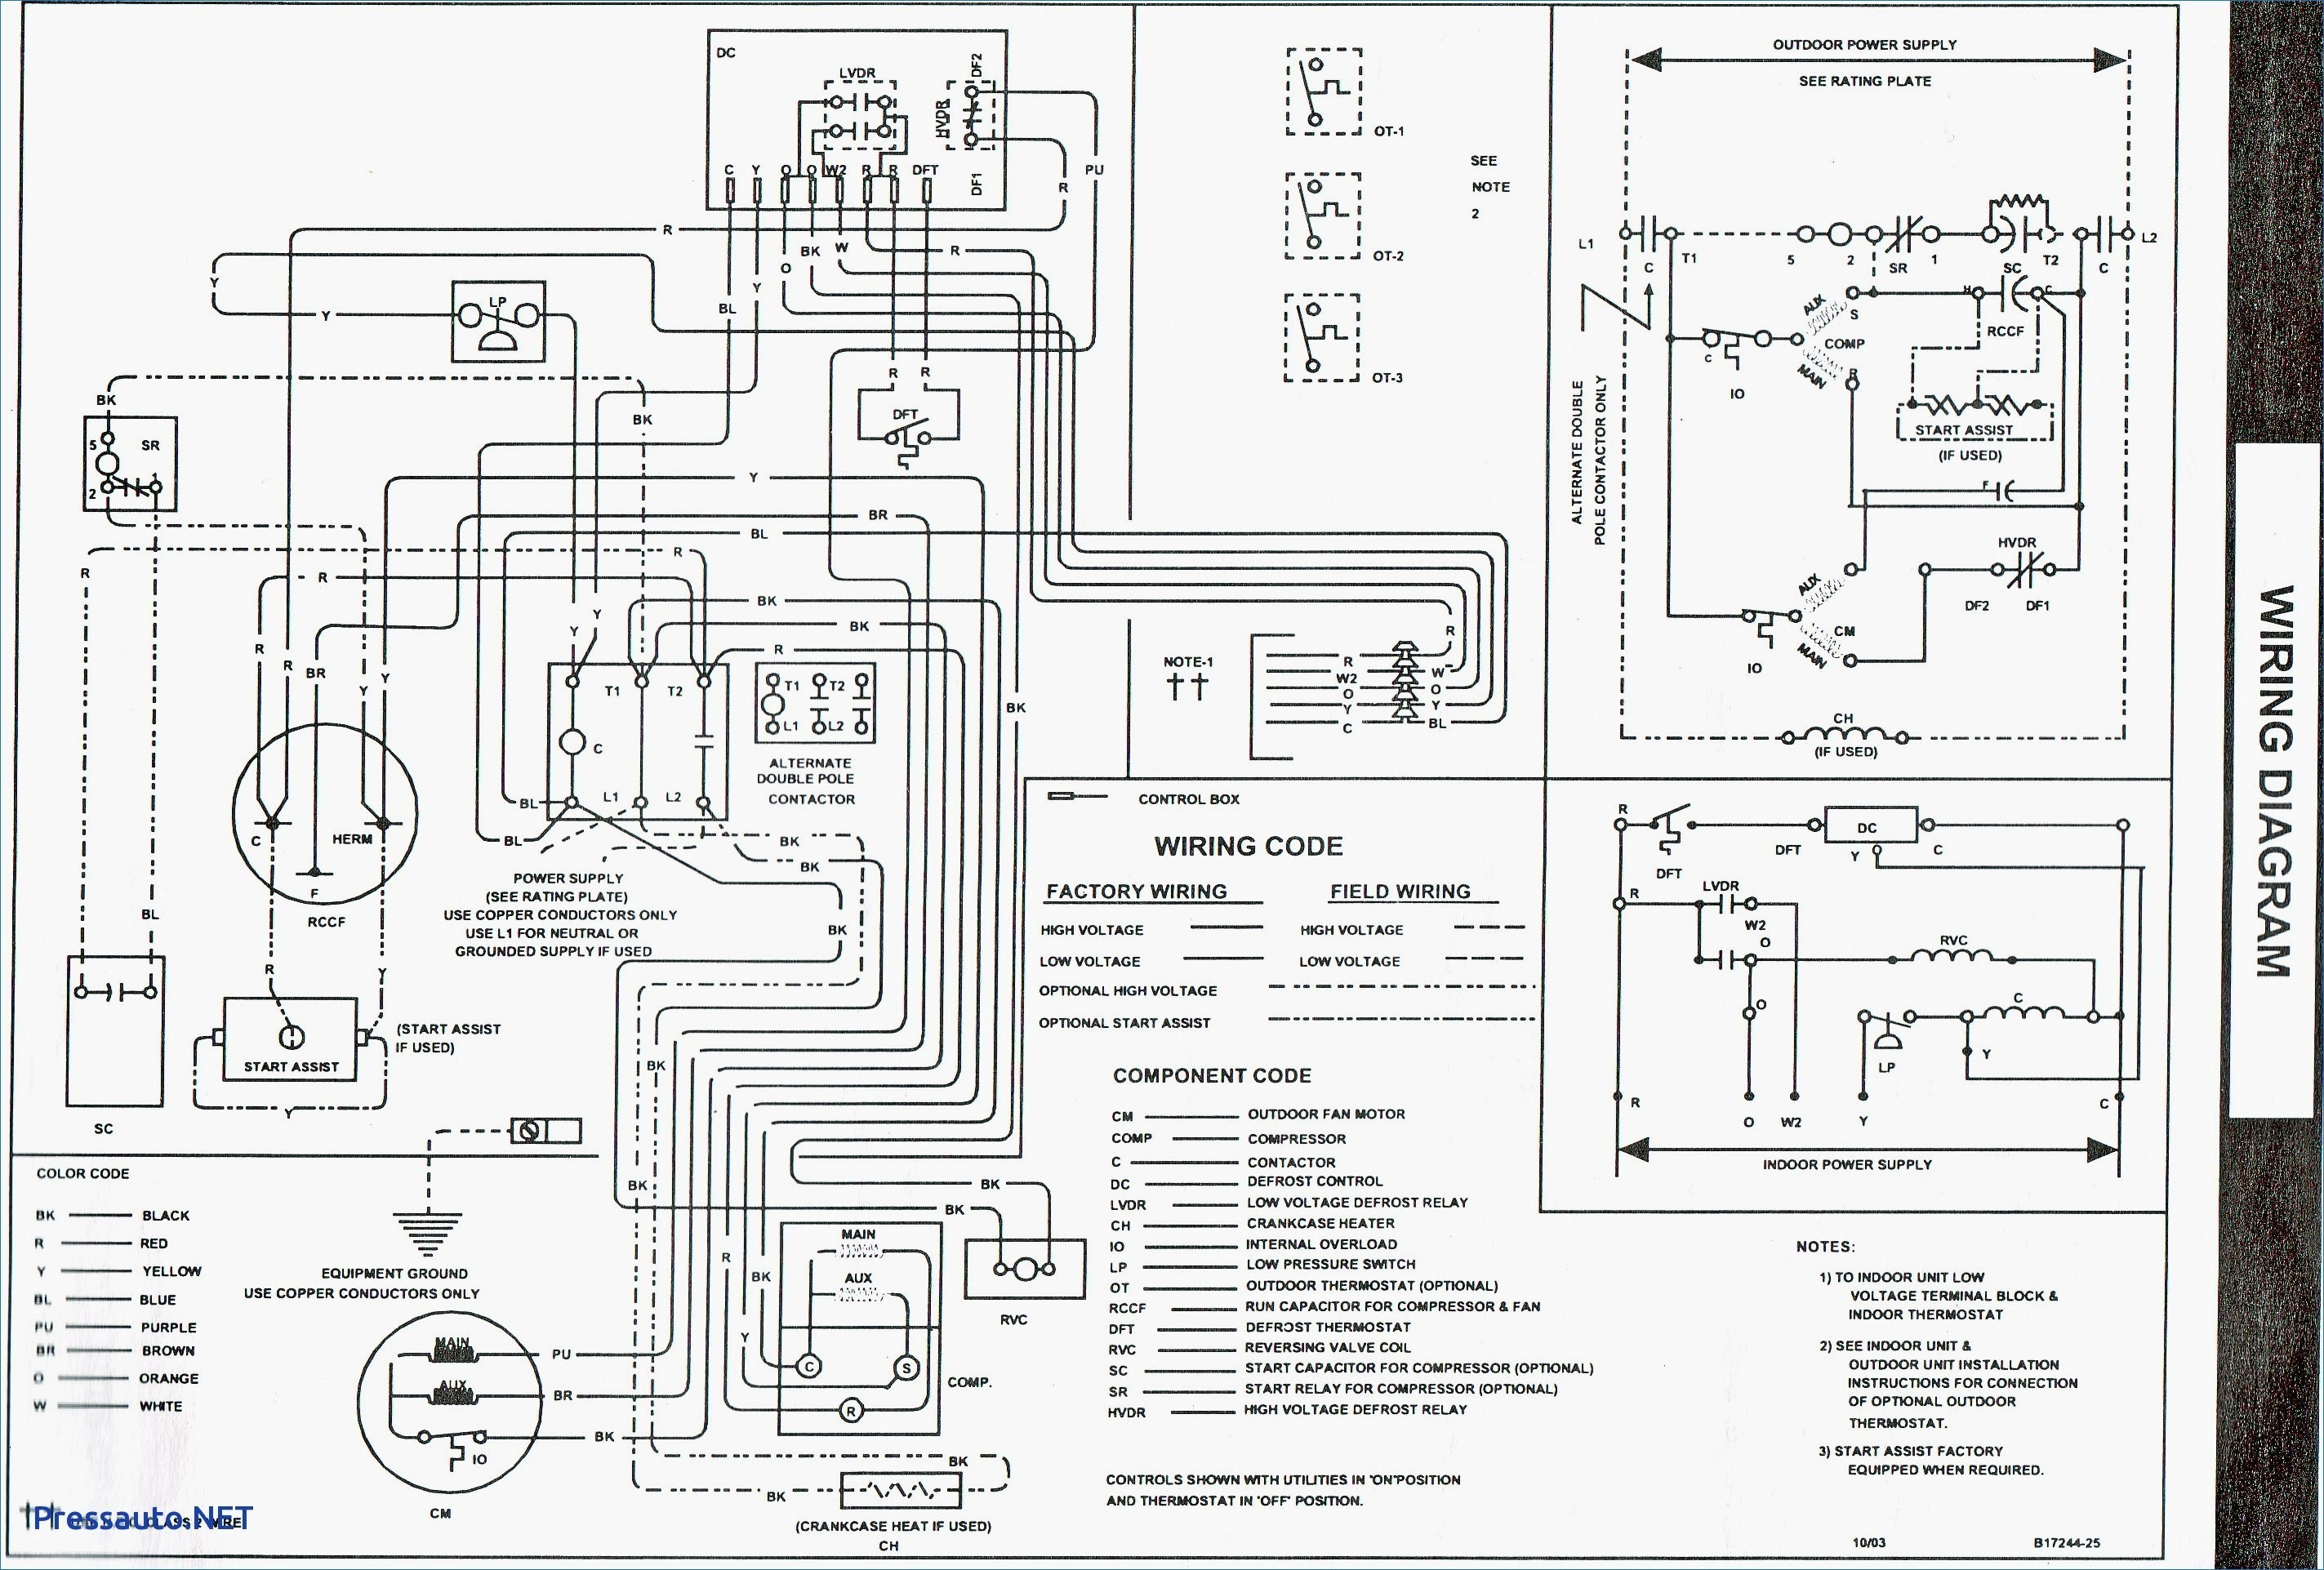 Goodman Electric Furnace Wiring Diagram Goodman Electric Heat Strip Wiring Hvac Diy Chatroom Goodman Defrost Board Wiring Diagram Free Wiring Diagram 8 Best Images Of Goodman Electric Furnace Wiring Diagram Goodman Furnace